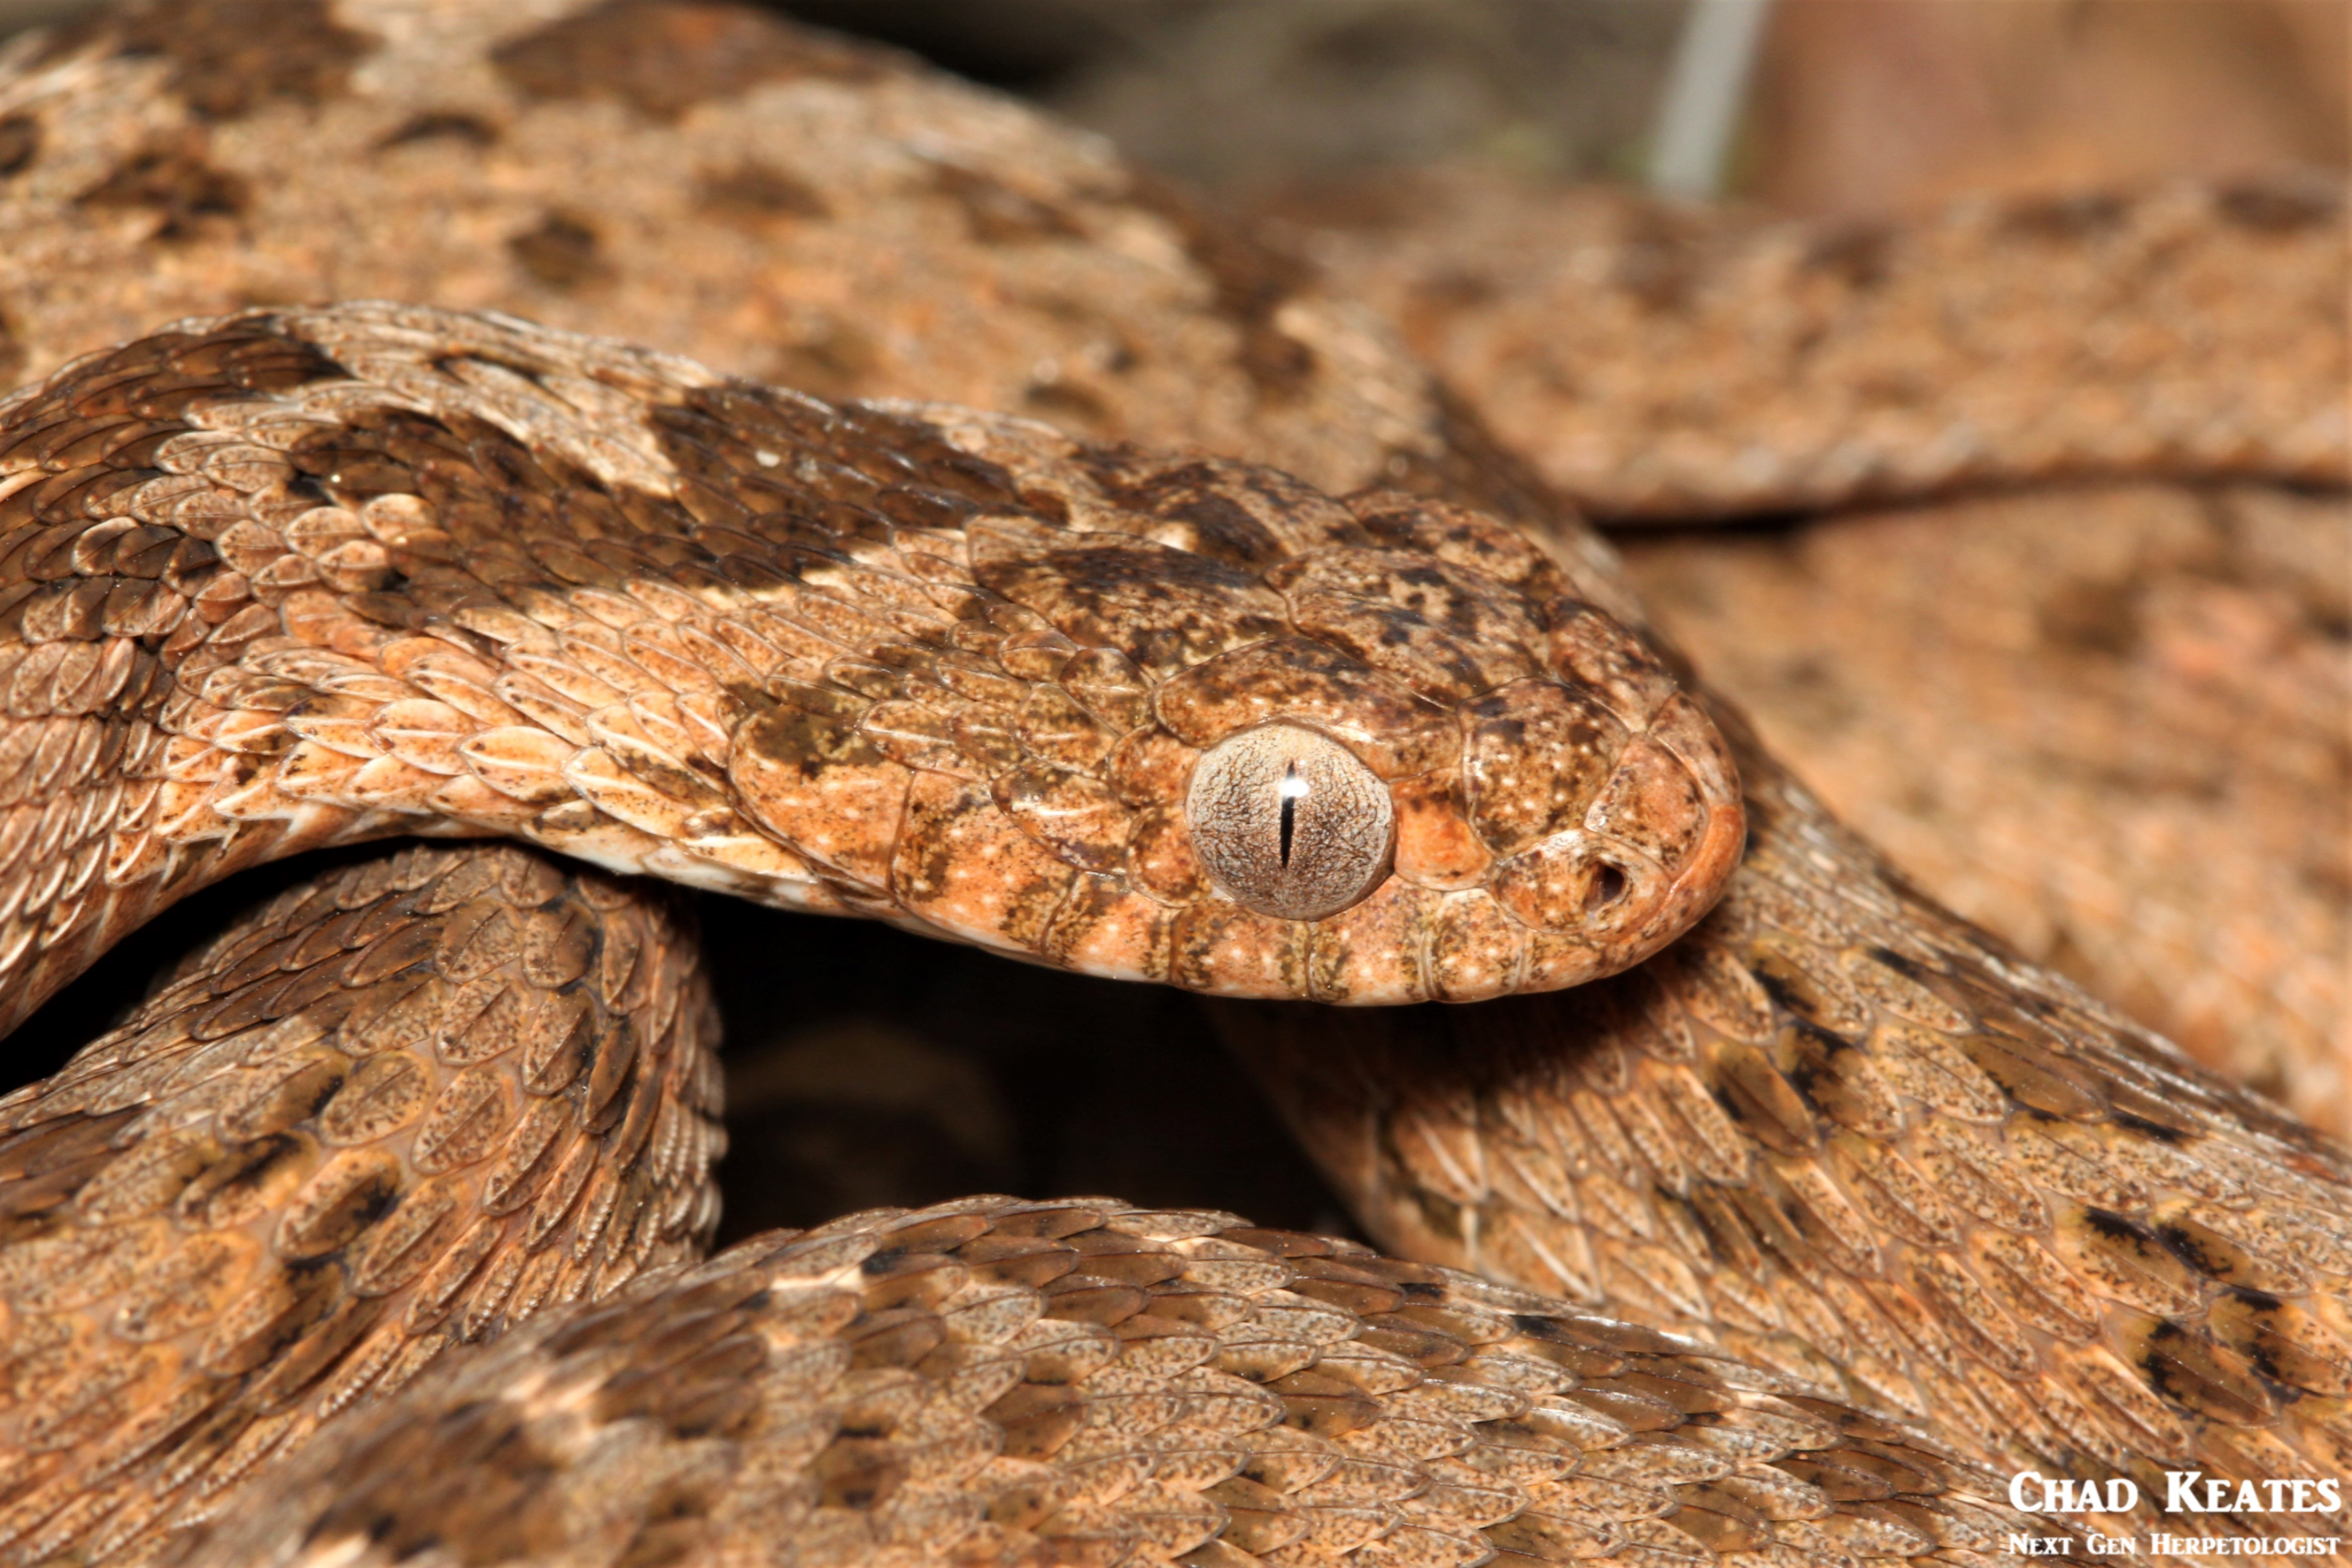 Dasypeltis_scabra_Rhombic_Egg_Eater_Chad_Keates (3)